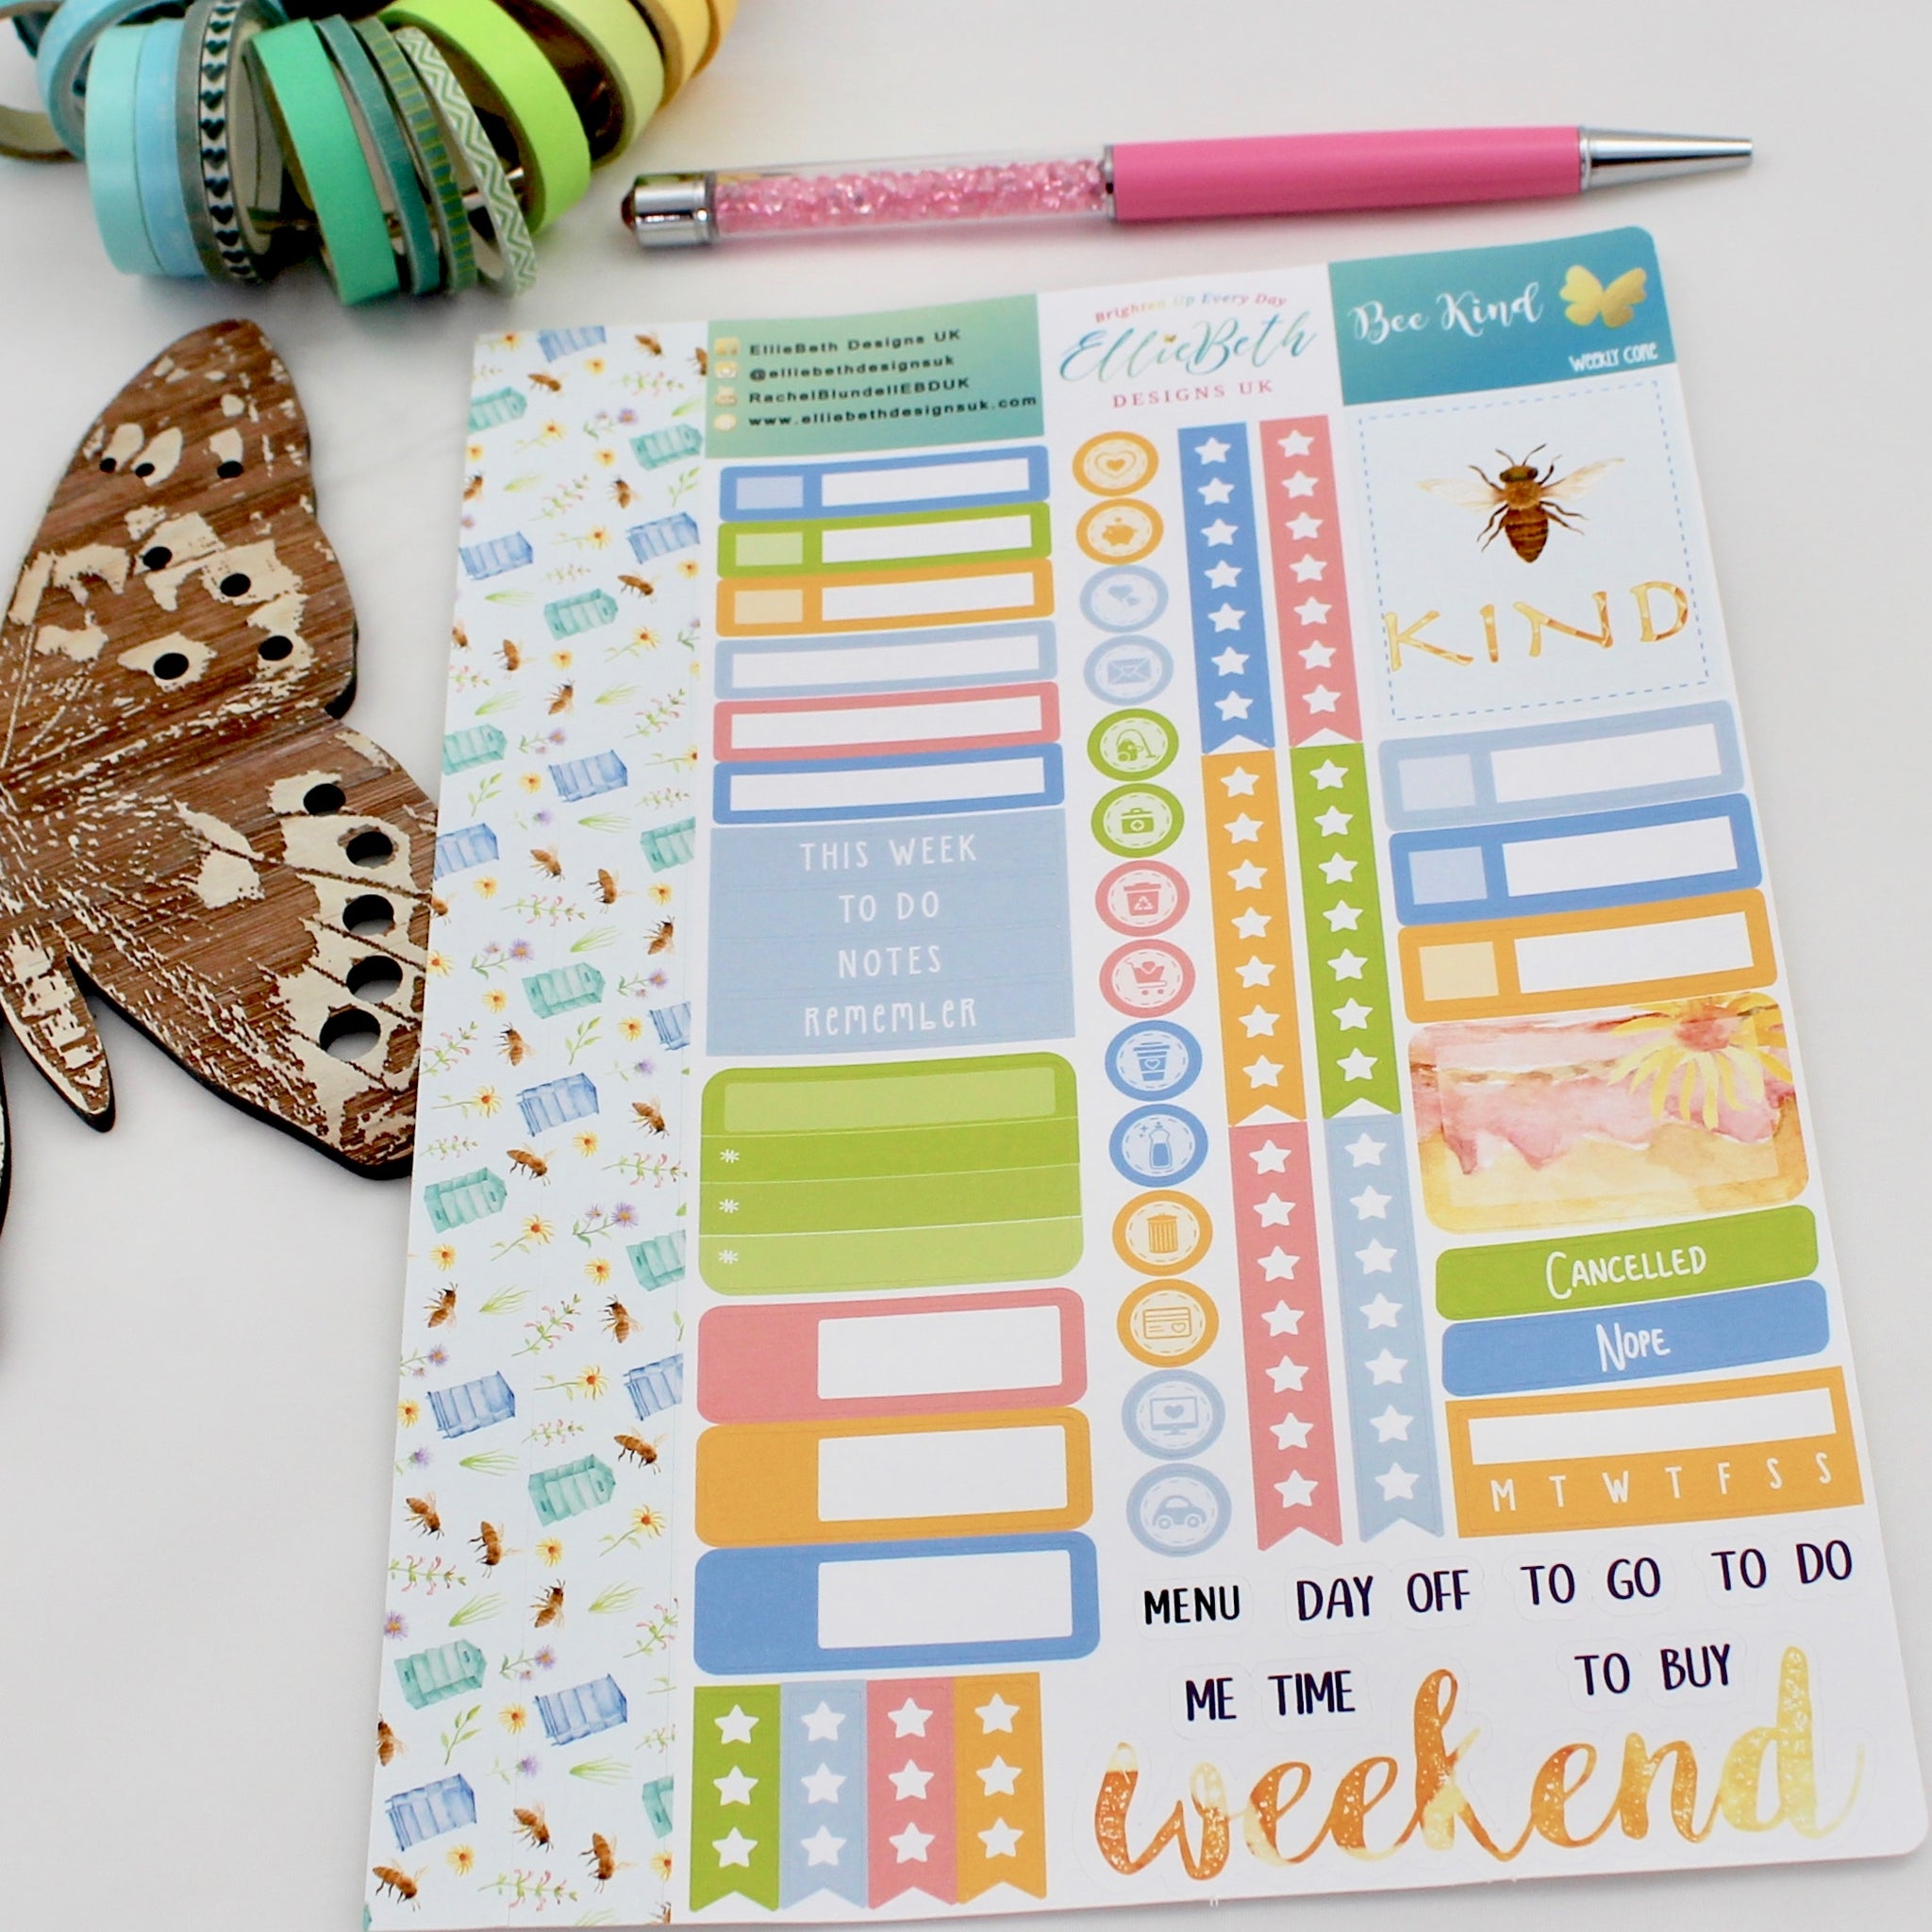 'Bee Kind' - Weekly Core Sheet - A5 binder ready planner stickers